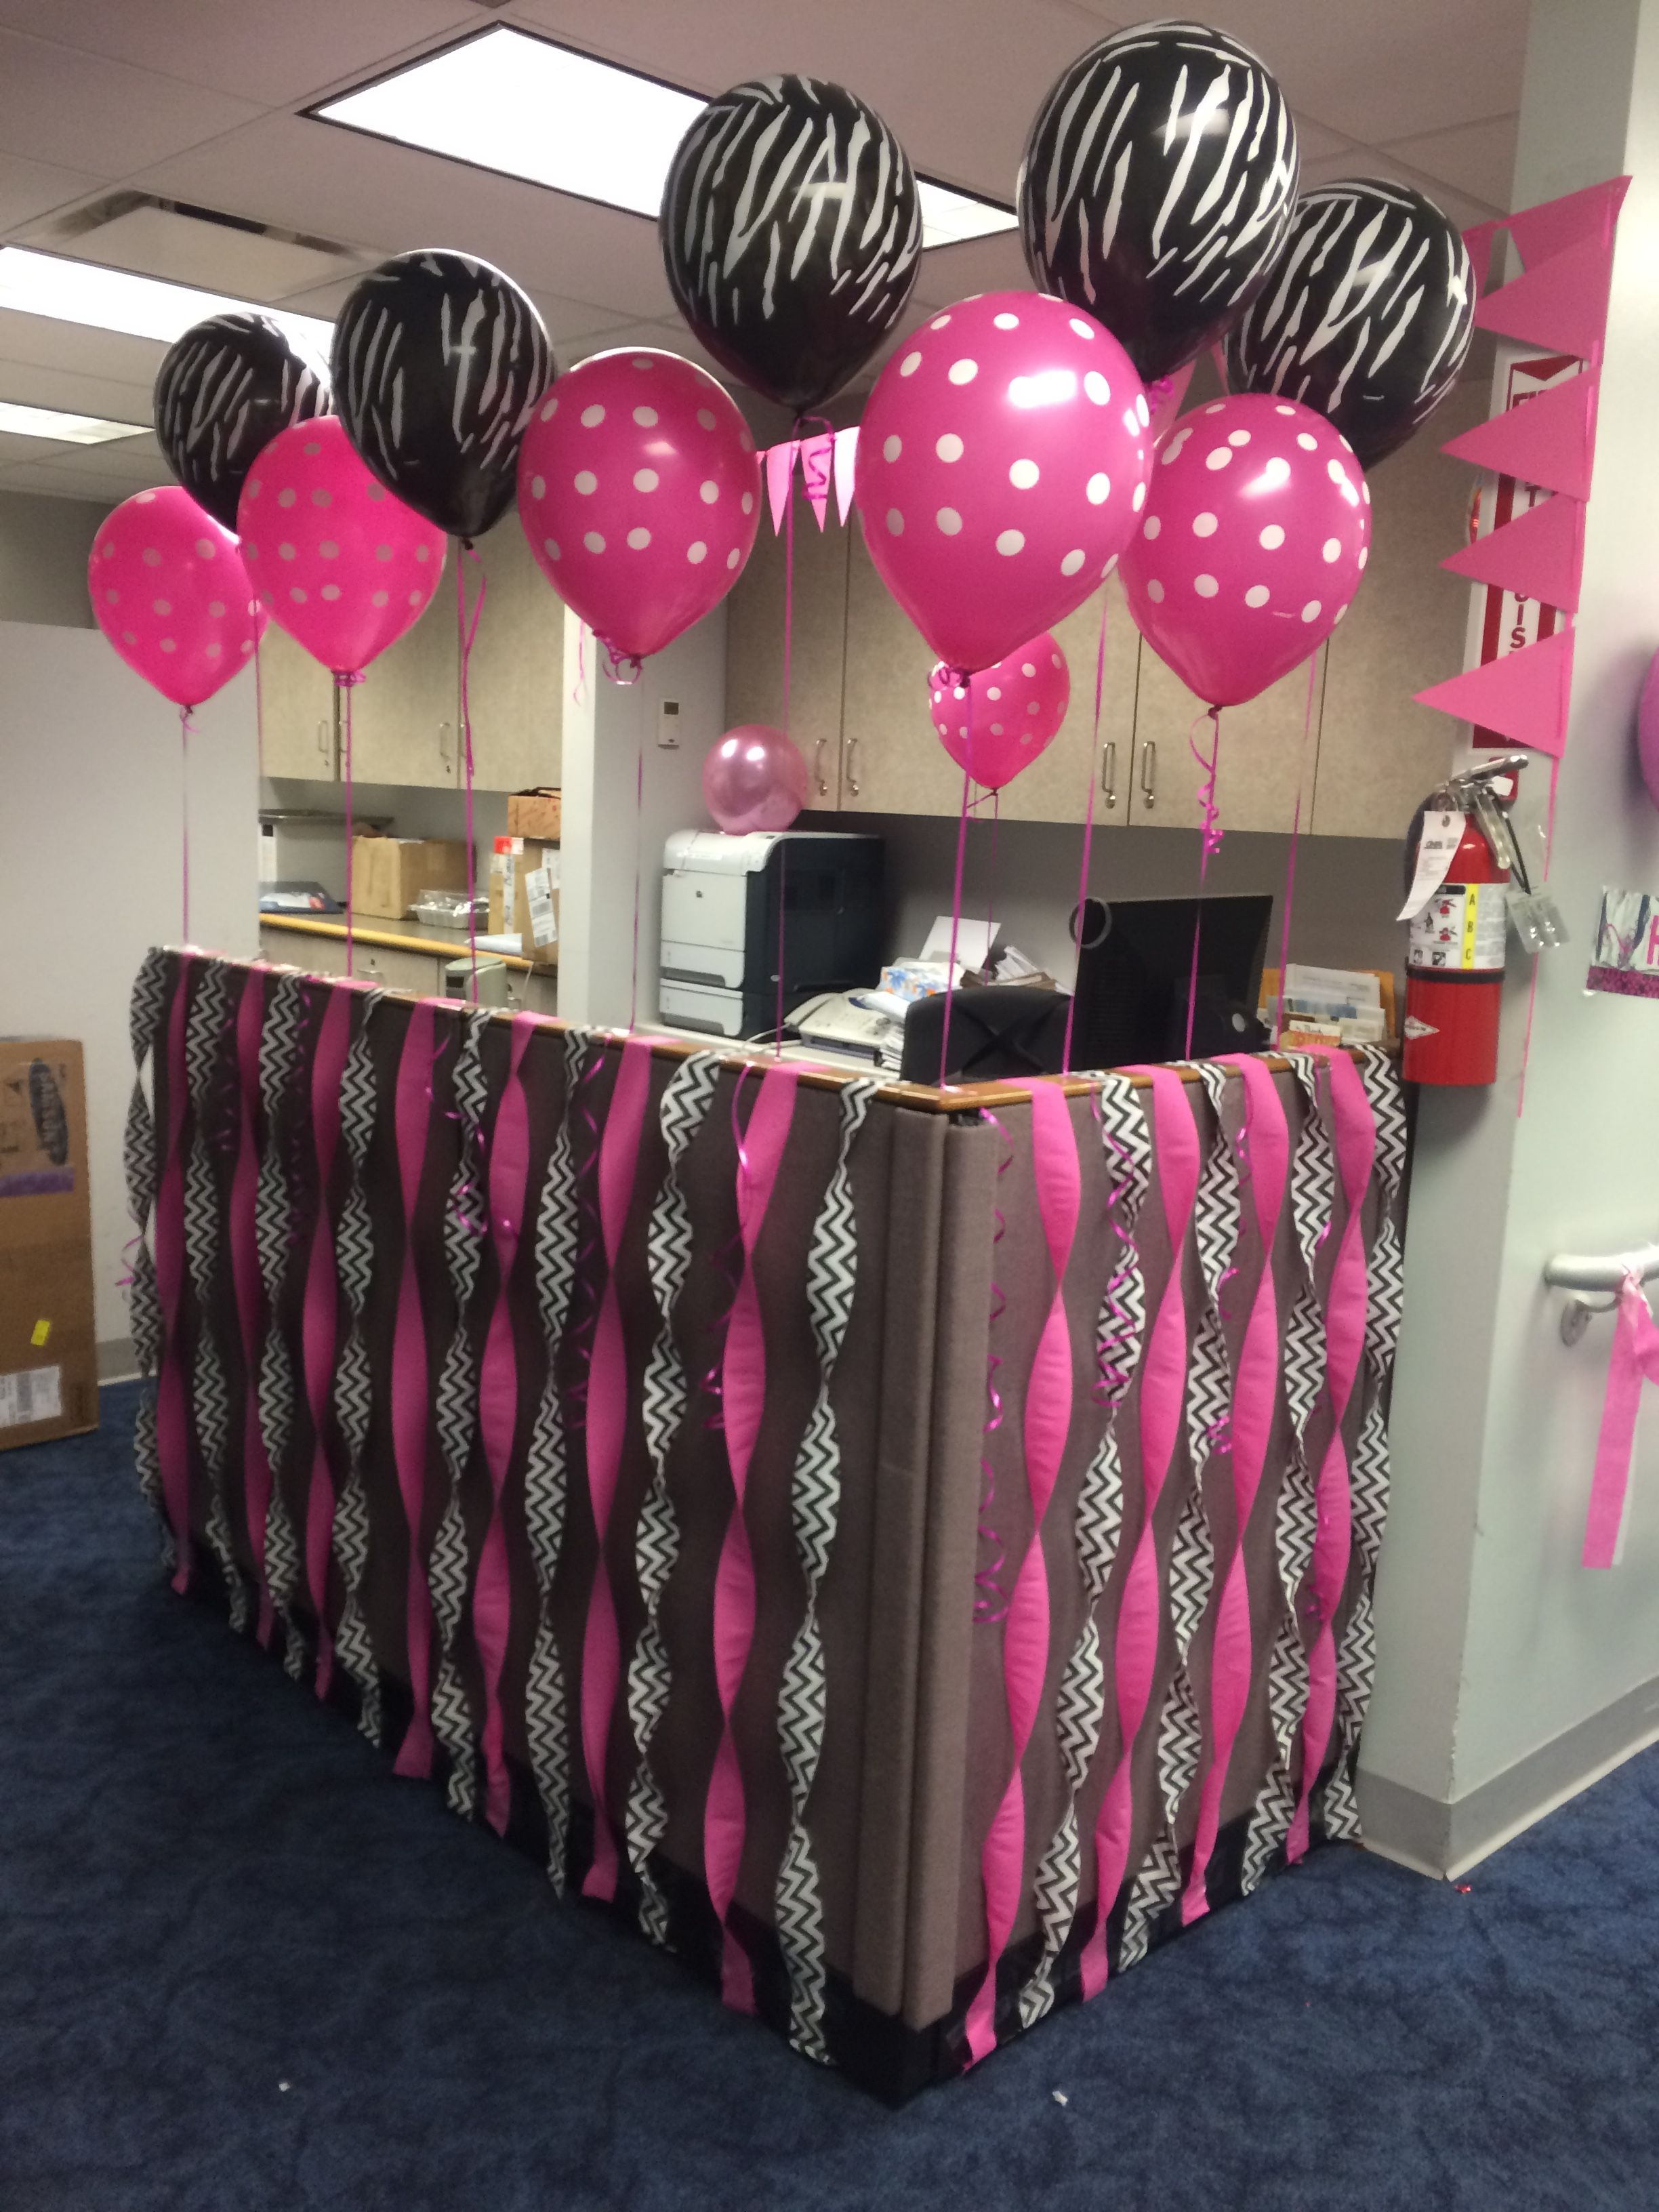 Pin by Carolyn Conner on Decorating at work Pinterest Cubicle